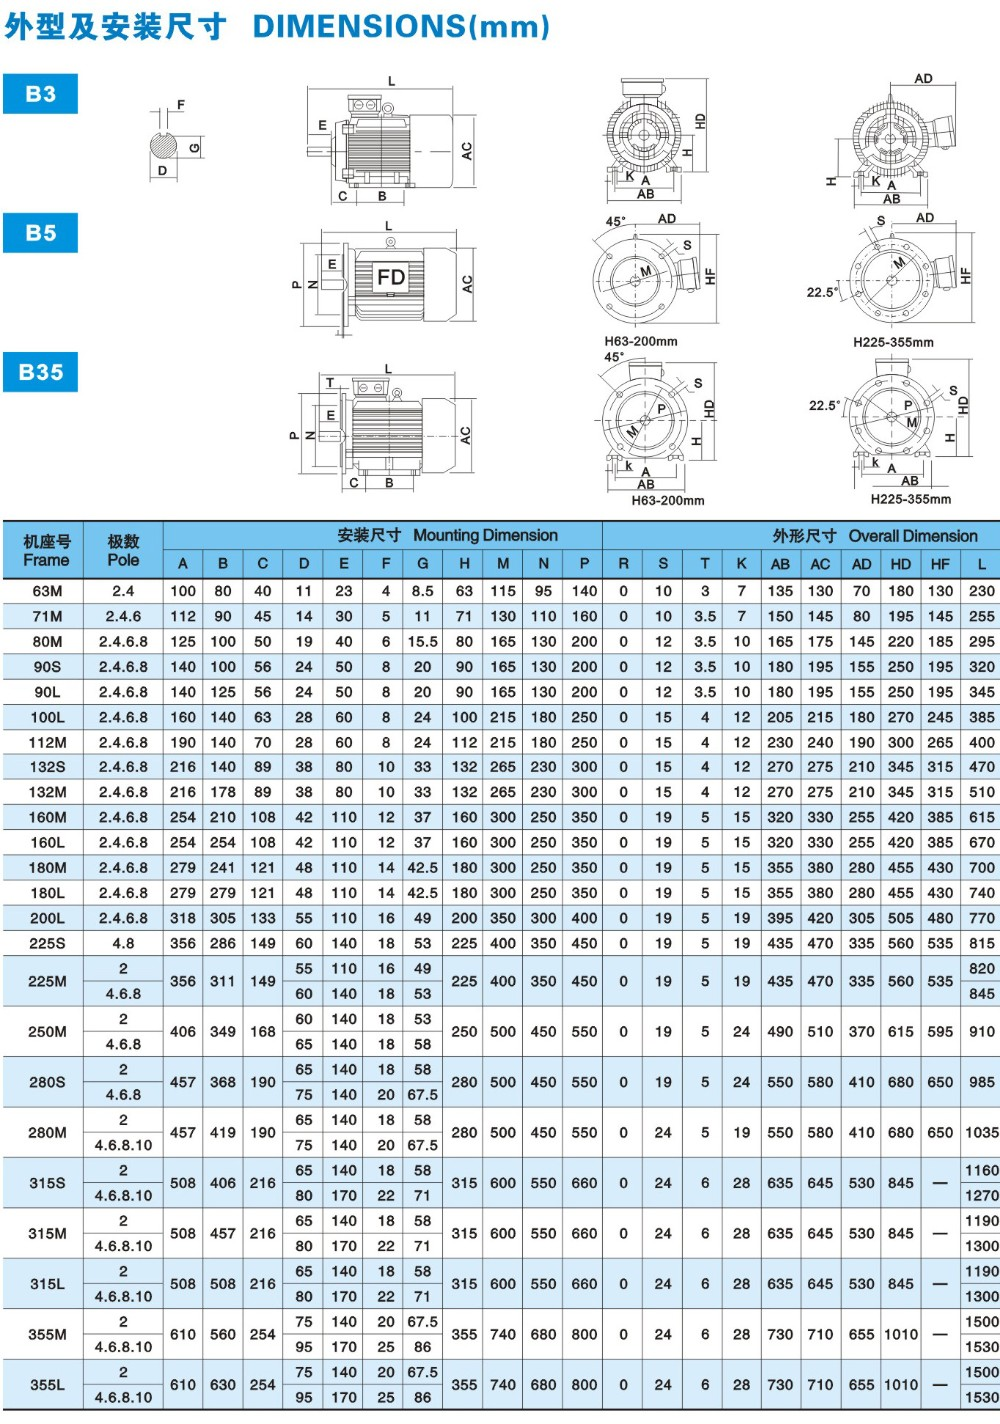 Y2 three phase electric motor (from Y2-63 to Y2-355L) China